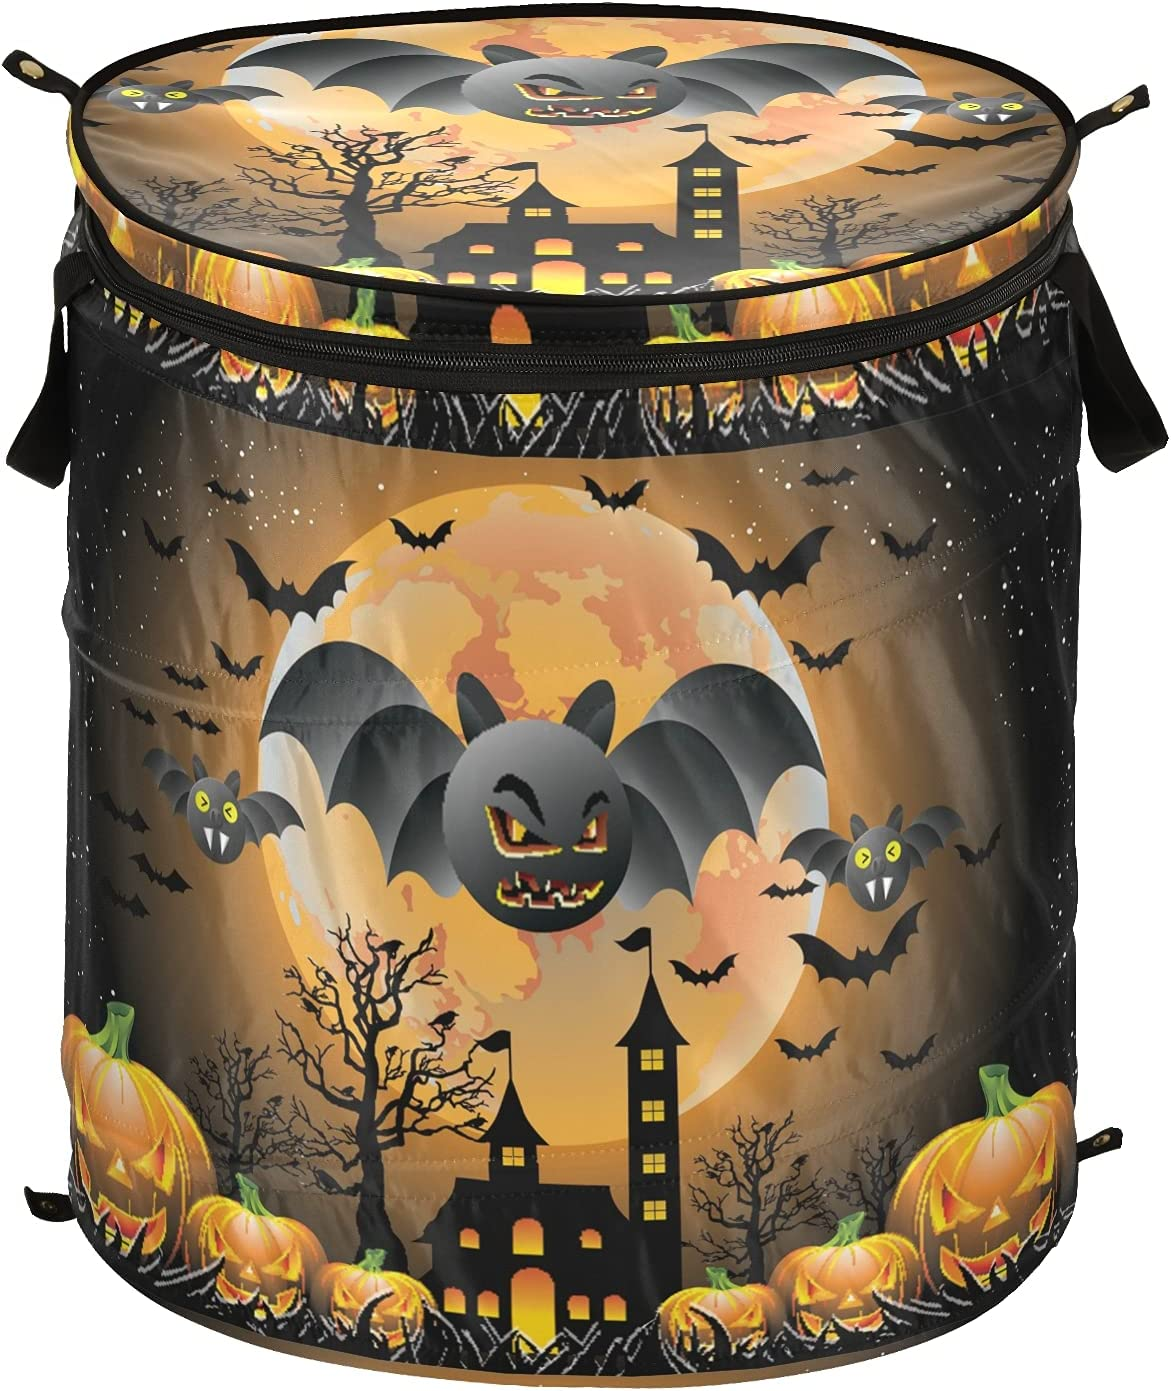 Halloween Pumpkin Haunted House Pop Up F Lid Hamper Max Popular brand 75% OFF Laundry with